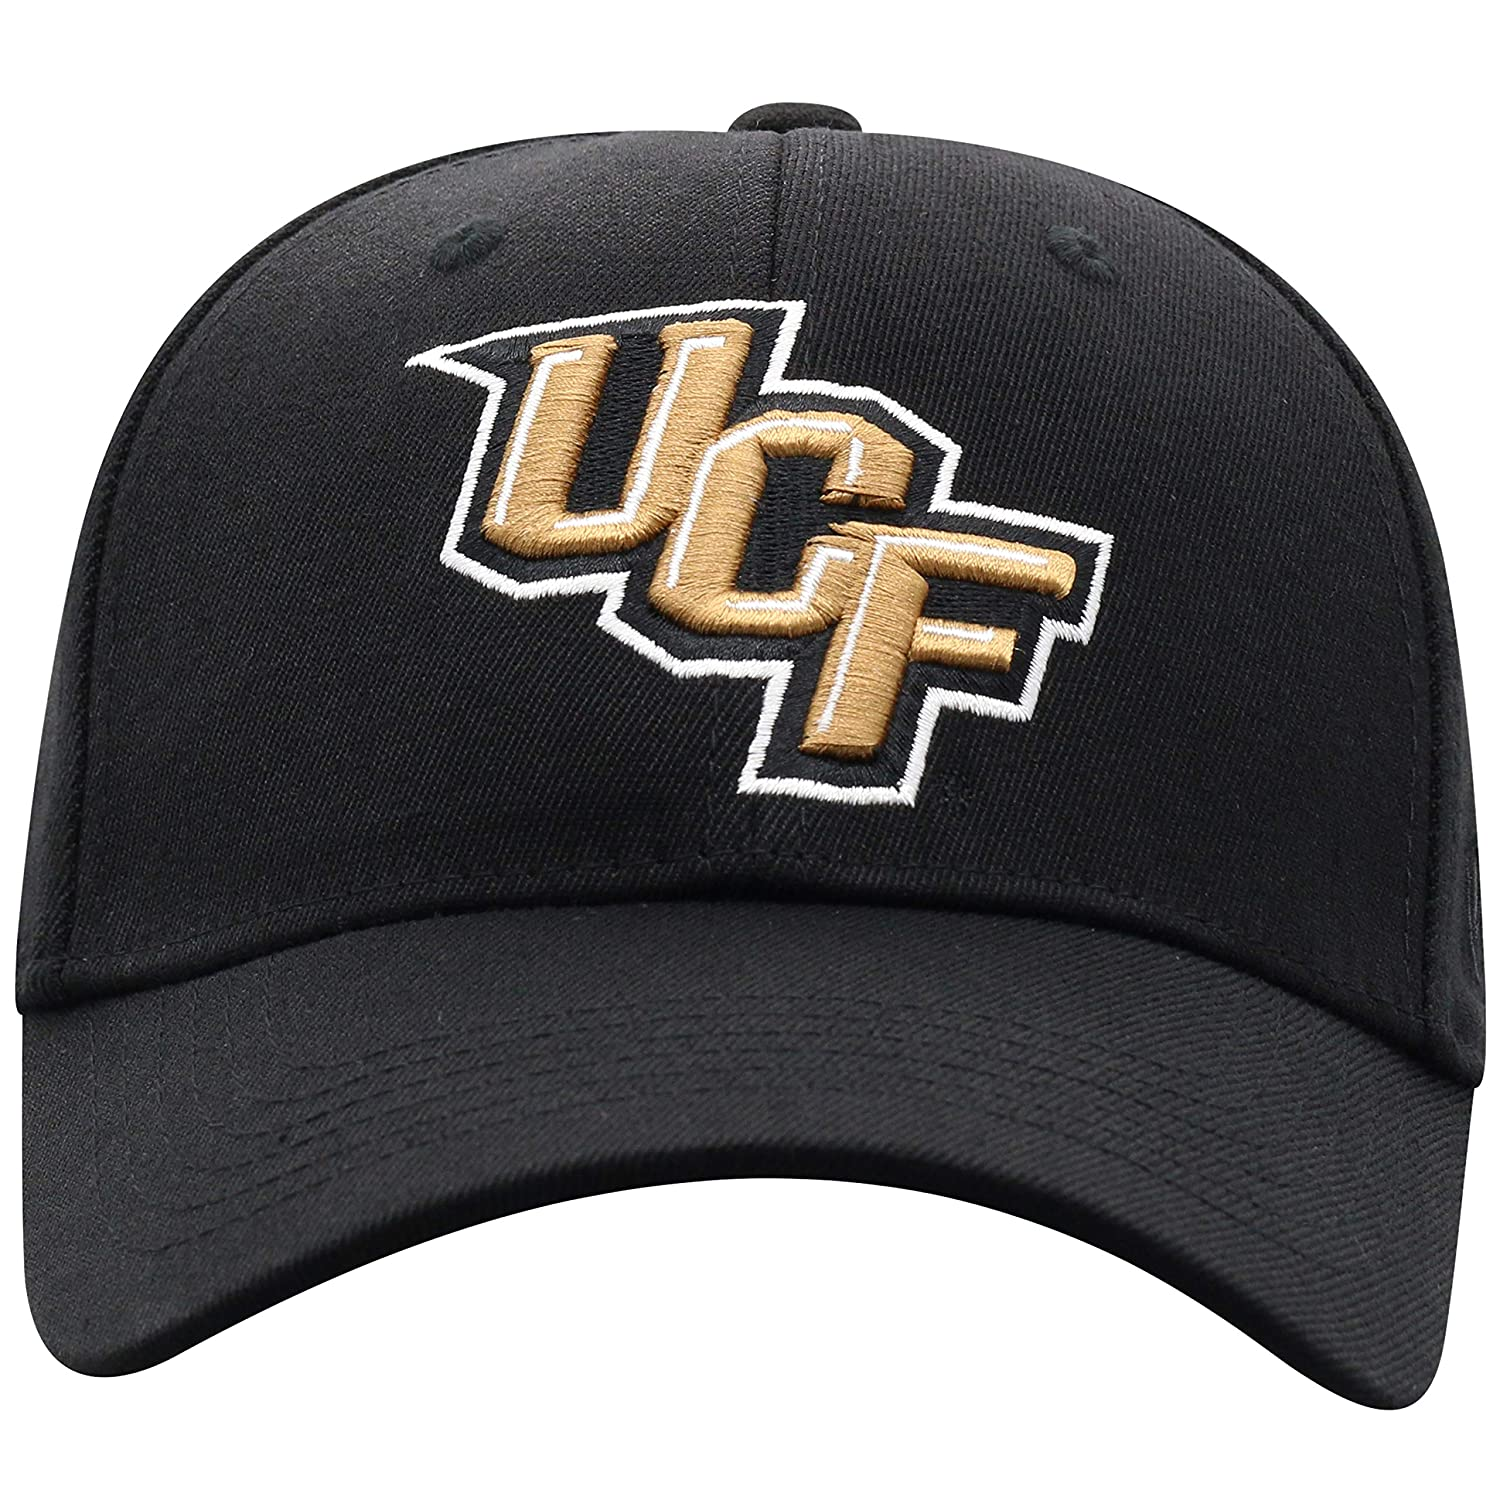 Top of the World NCAA Premium Collection One-Fit Memory Fit Hat Black Icon